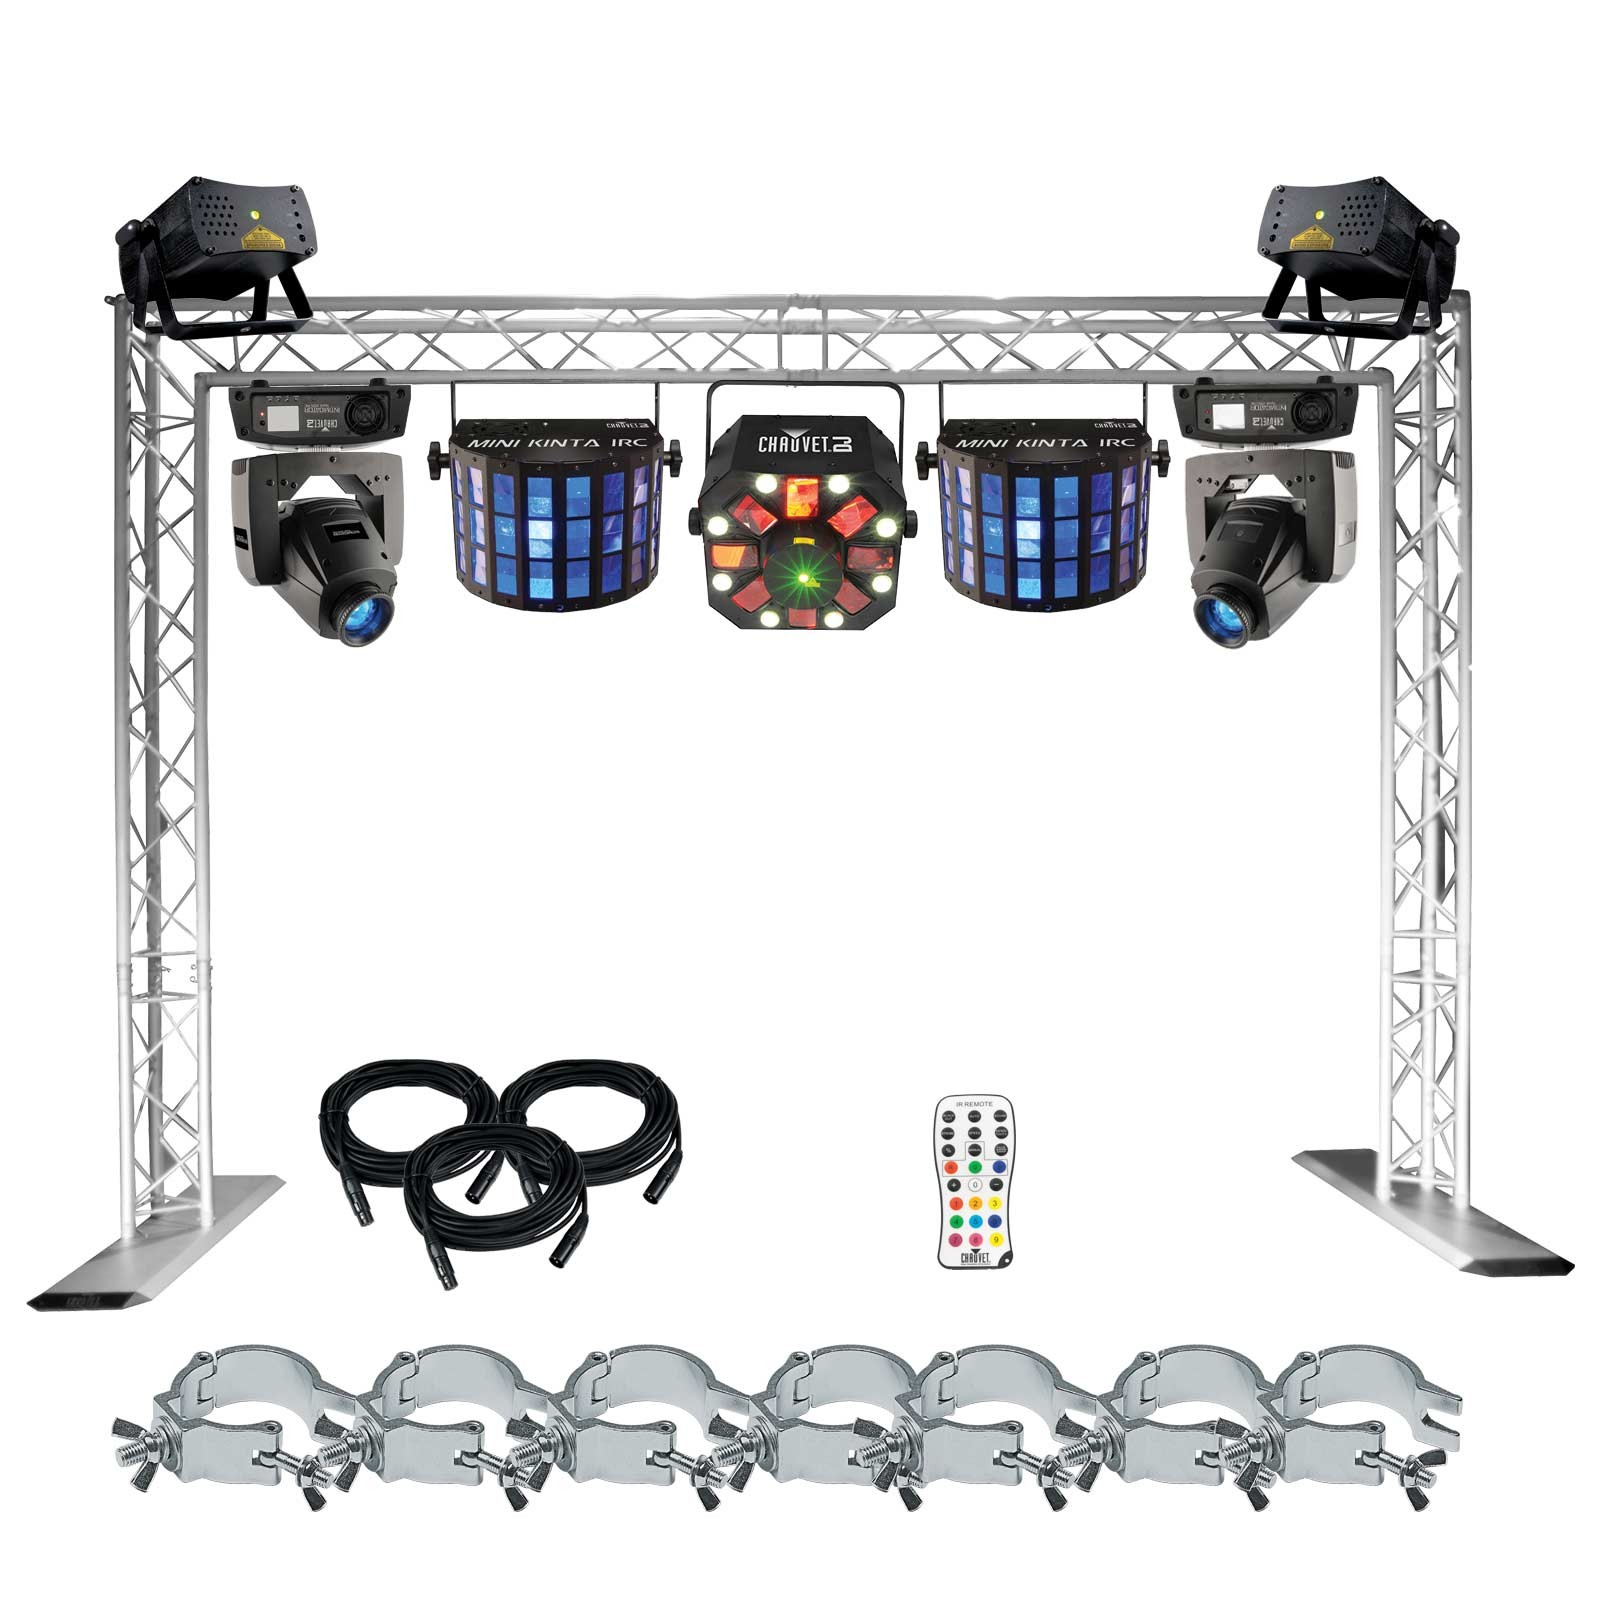 Chauvet dj show maker 250 for Truss package cost